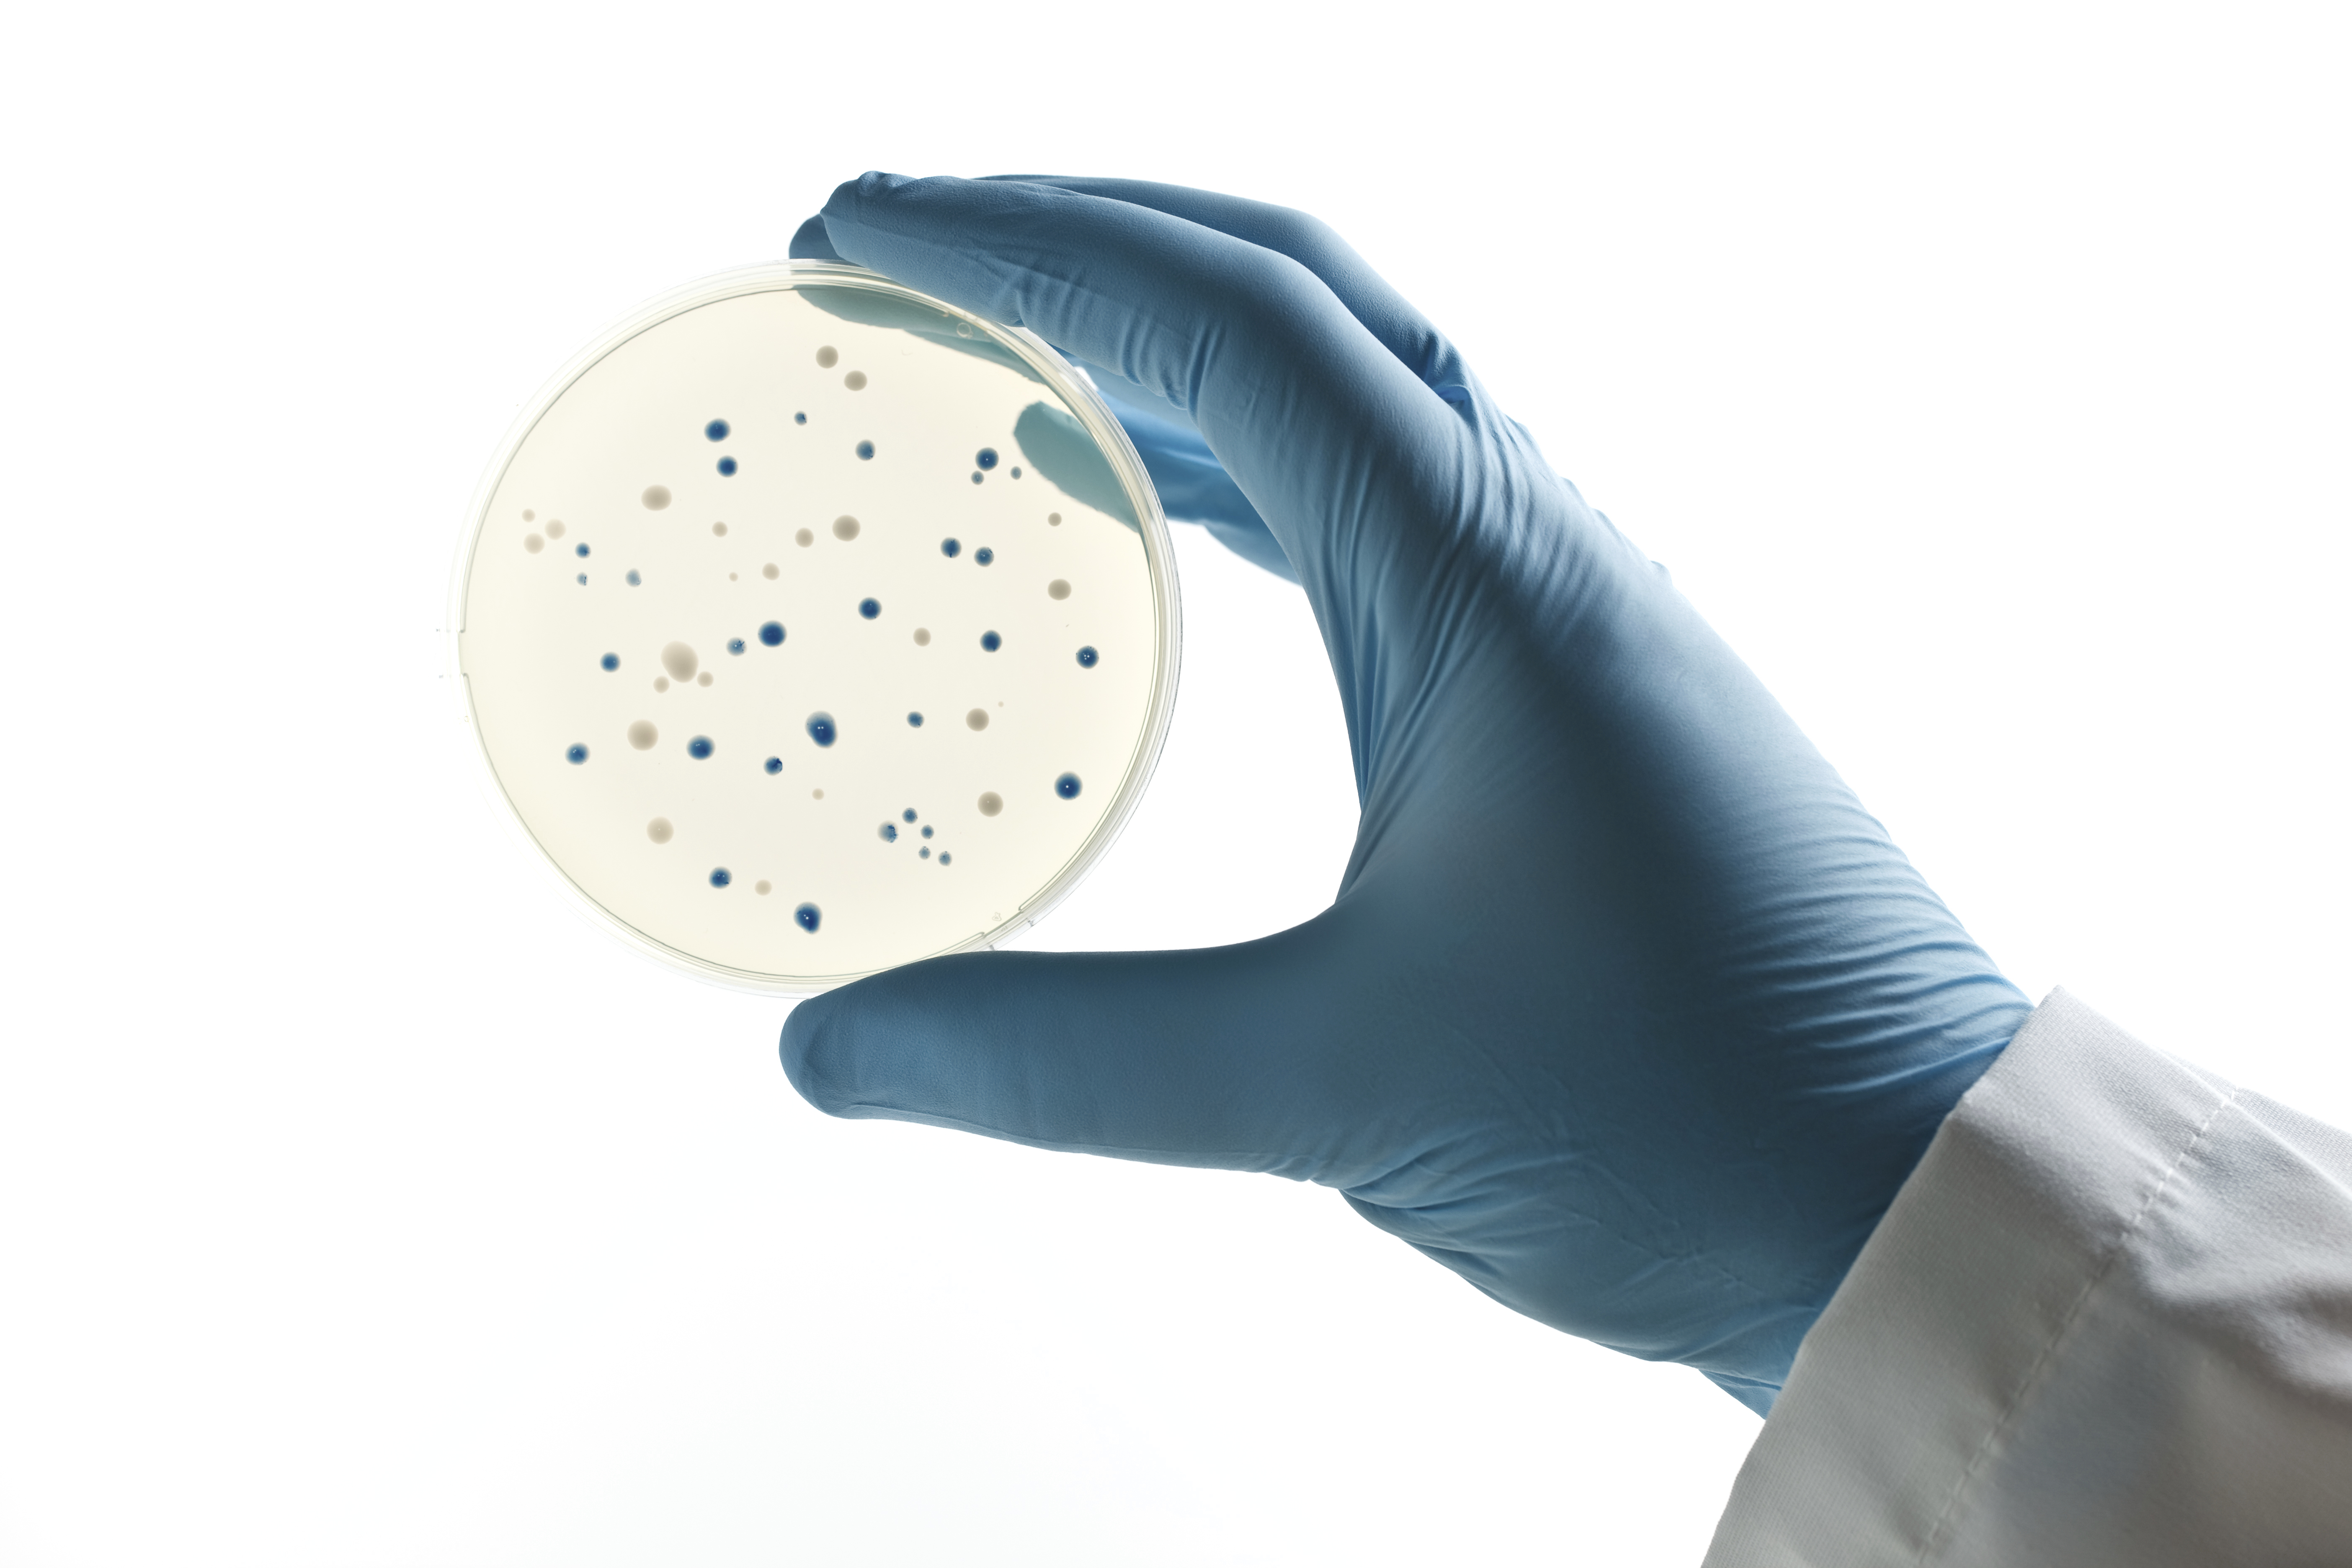 Our own gut bacteria may be the next source of antibiotics